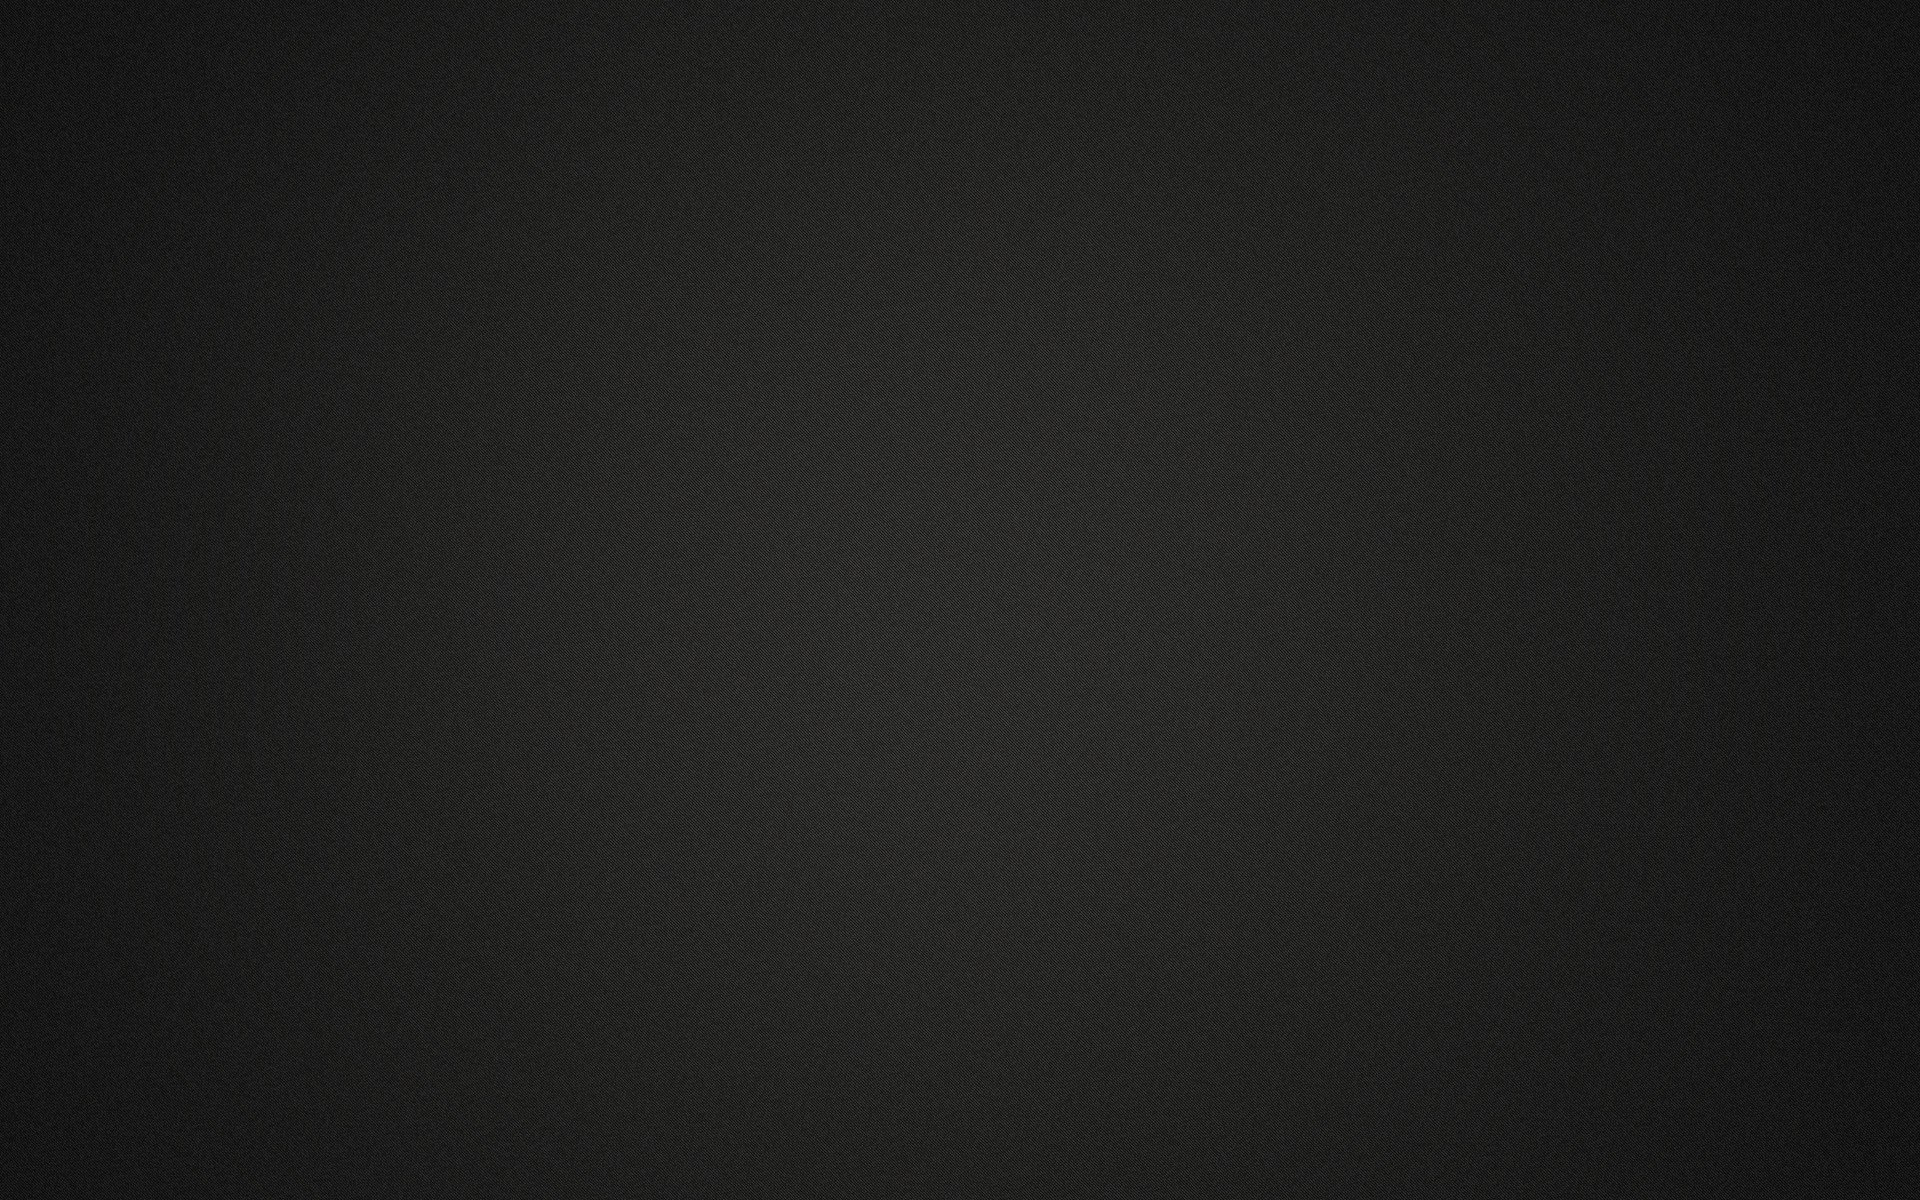 Dark Gray Background for Free